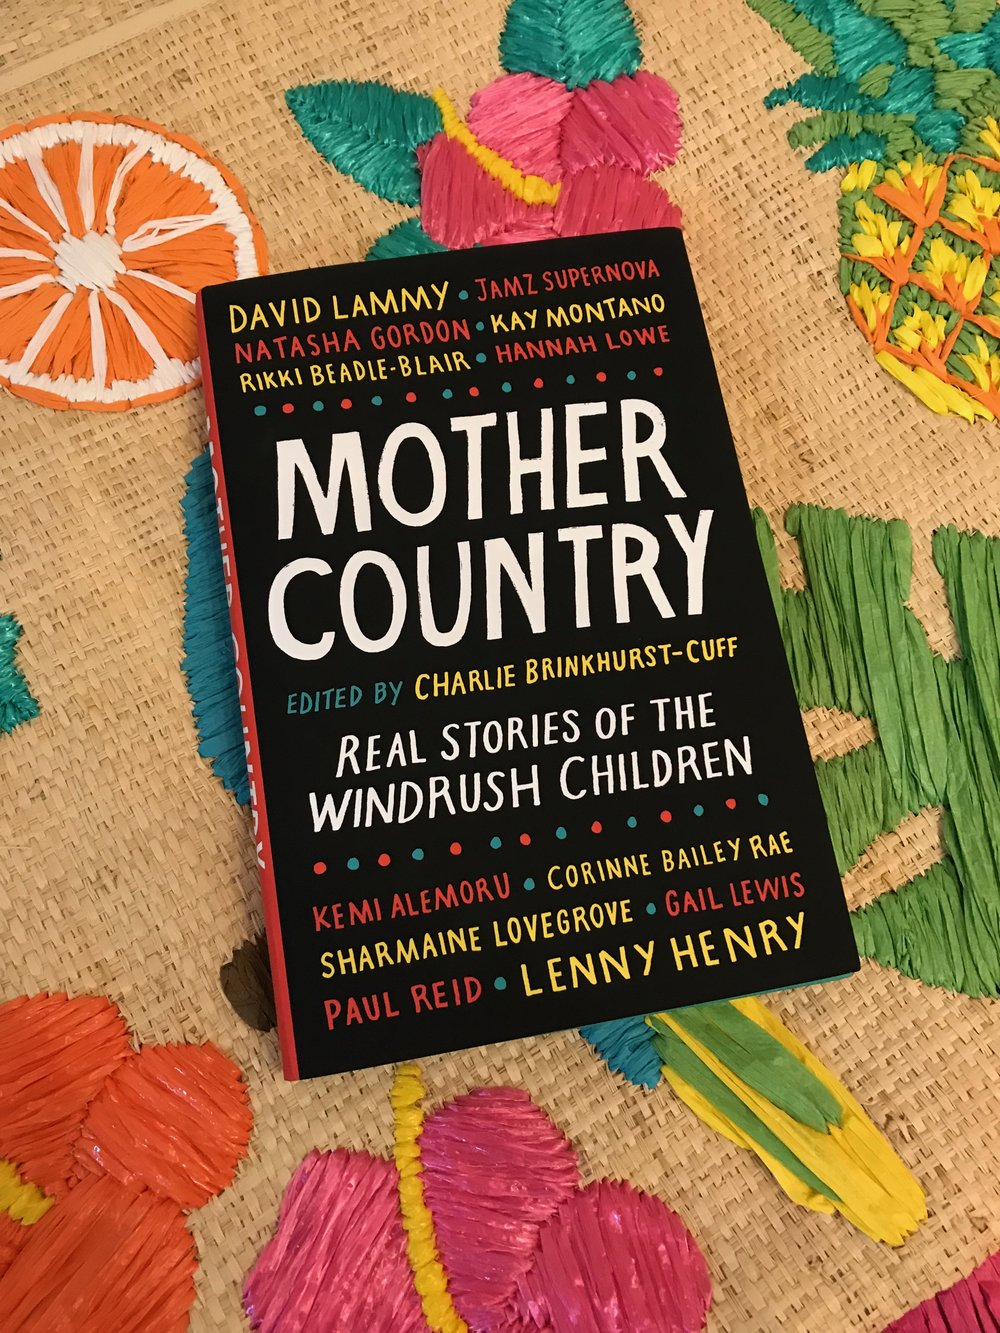 'Mother Country: Real Stories of the Windrush Children' by Charlie Brinkhurst-Cuff